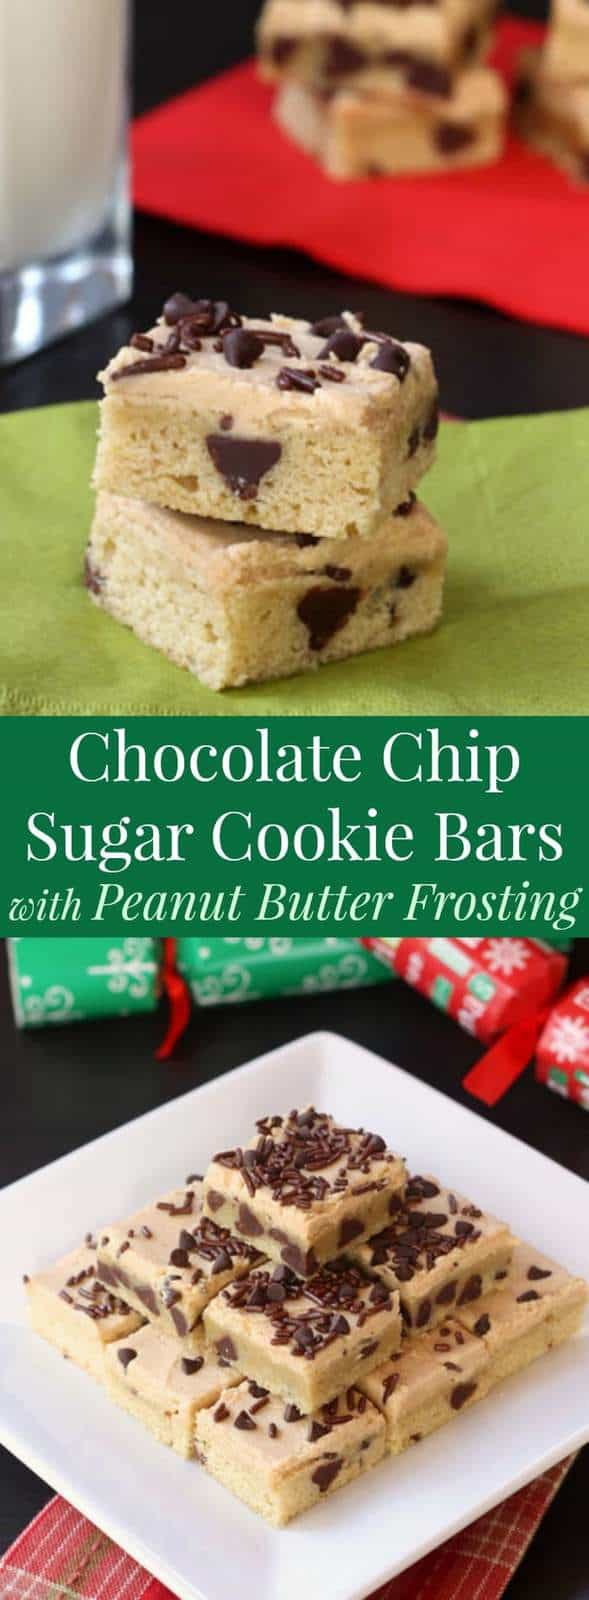 Chocolate Chip Sugar Cookie Bars with Peanut Butter Frosting - an easy Christmas cookie recipe to make with the kids!